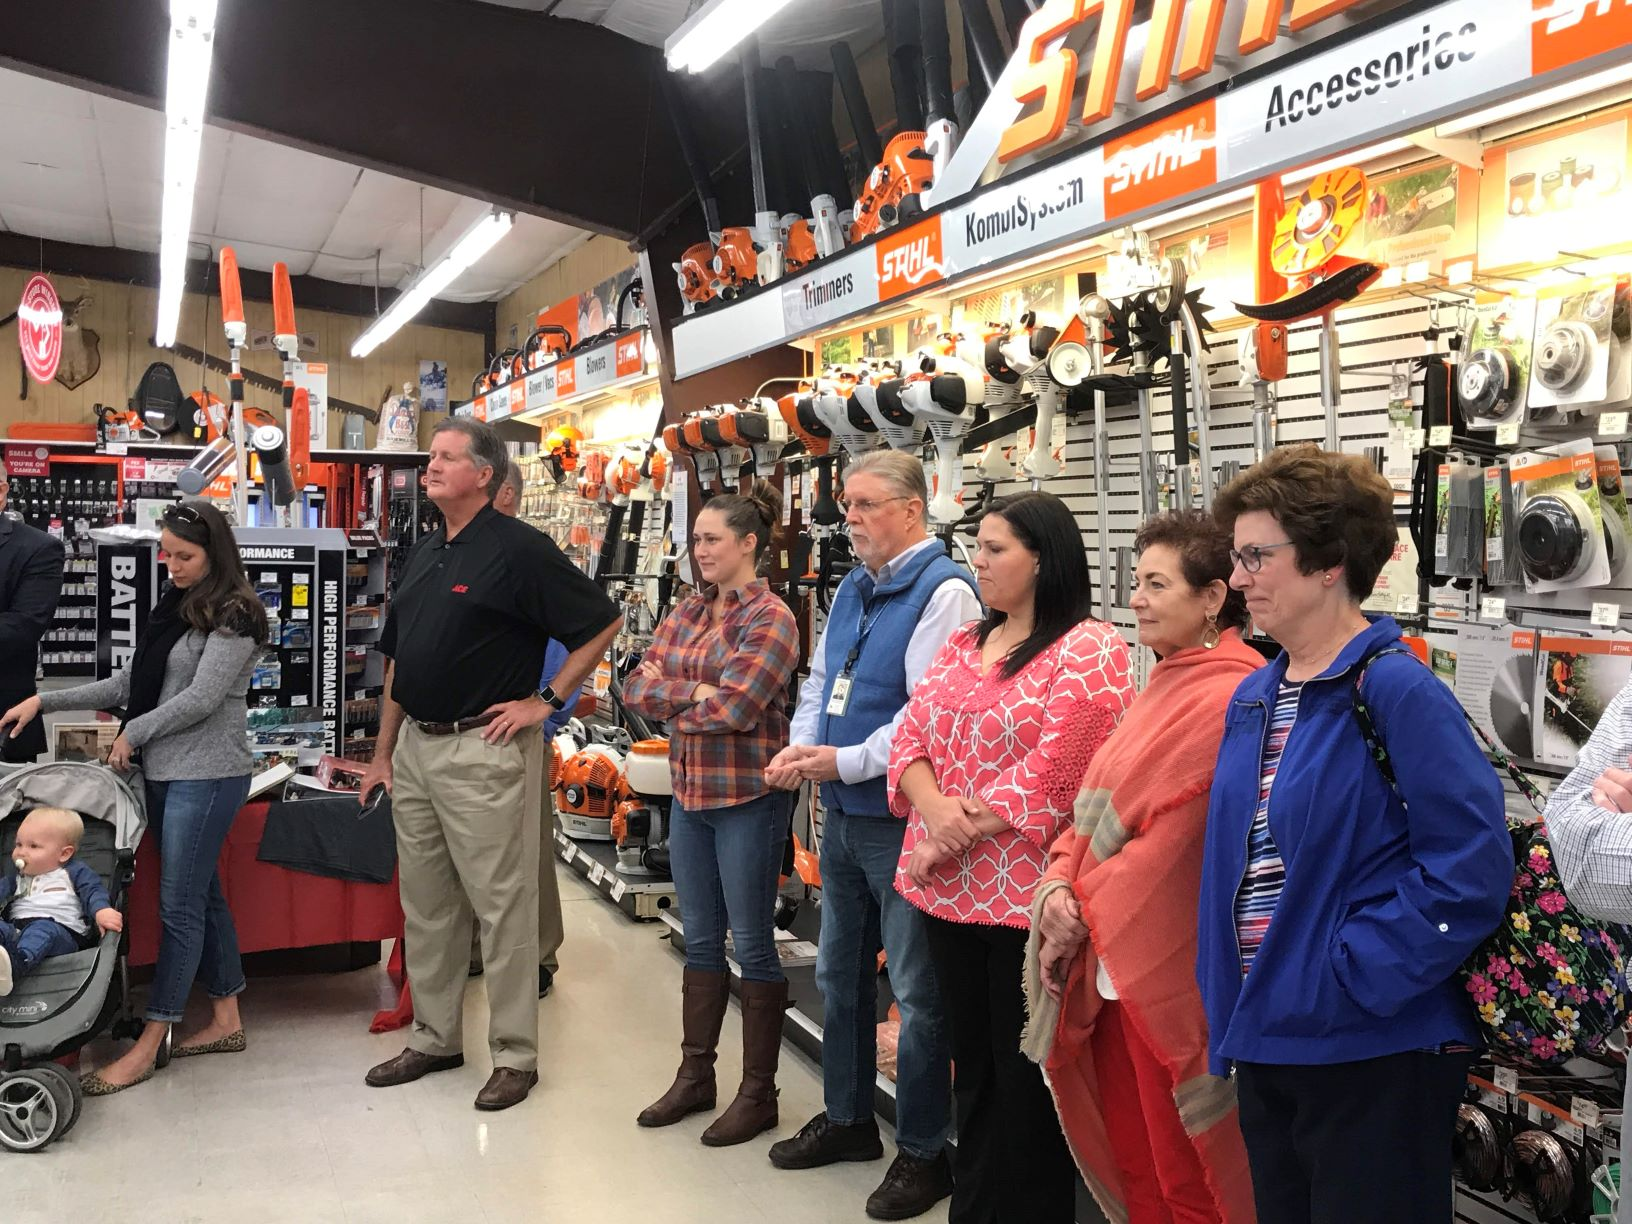 Spencer's ACE Hardware celebrates 35th Anniversary in Marion, NC